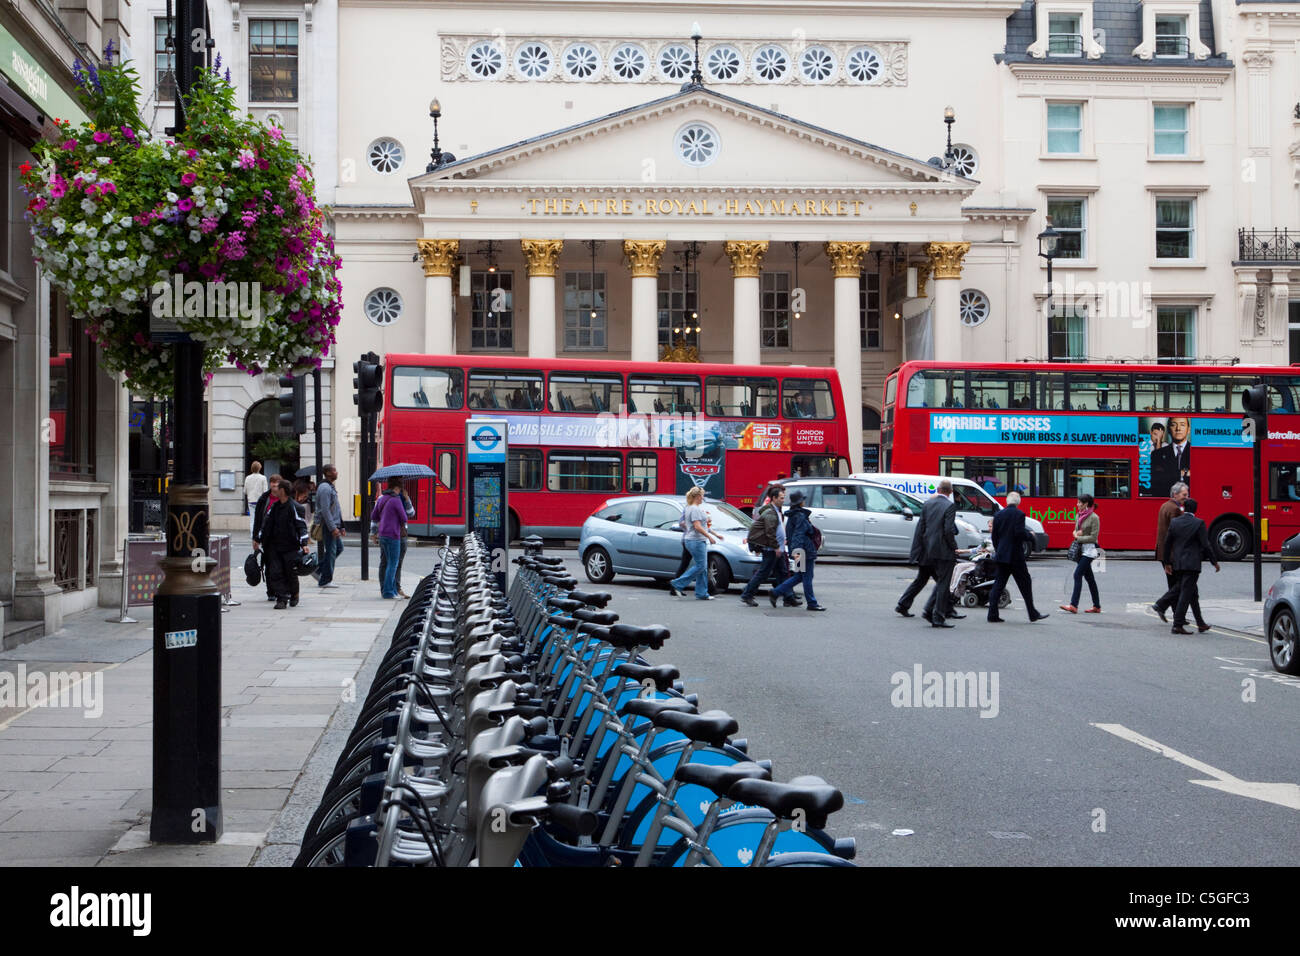 Theatre Royal Haymarket with Barclays rental bikes in the foreground, London, England, UK - Stock Image